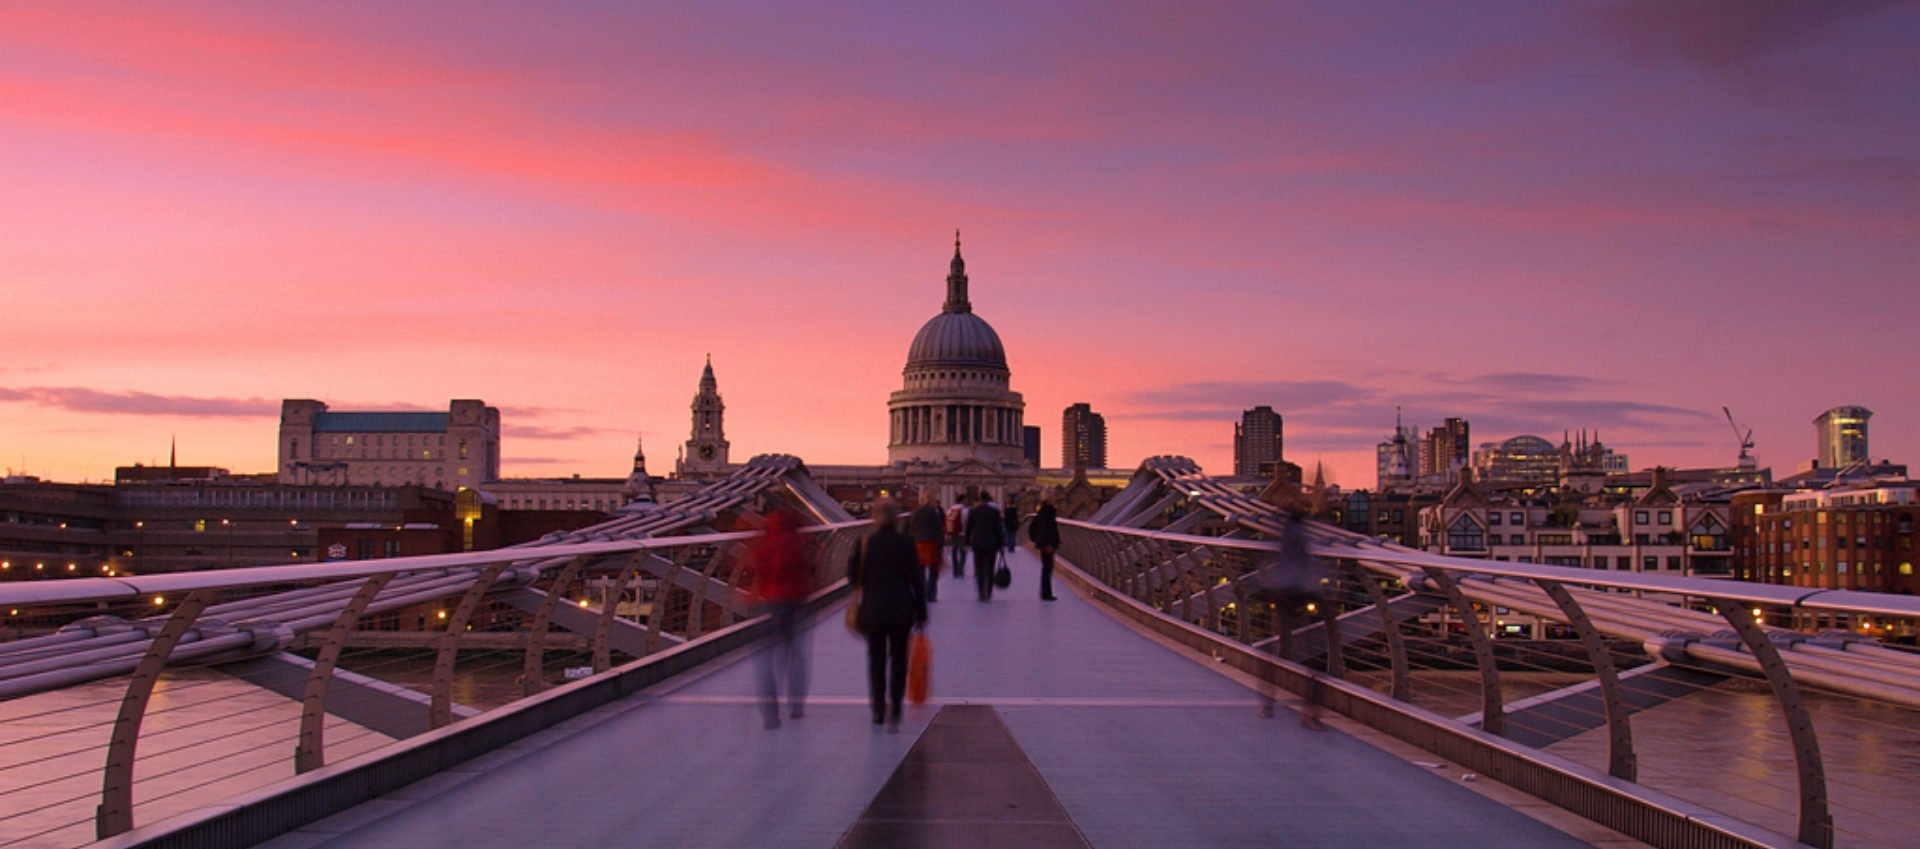 dating in the city of london W hether you're hopelessly amorous or only reluctantly romantic, london simmers with all manner of dating opportunities here telegraph staff provide their recommendations for the london.